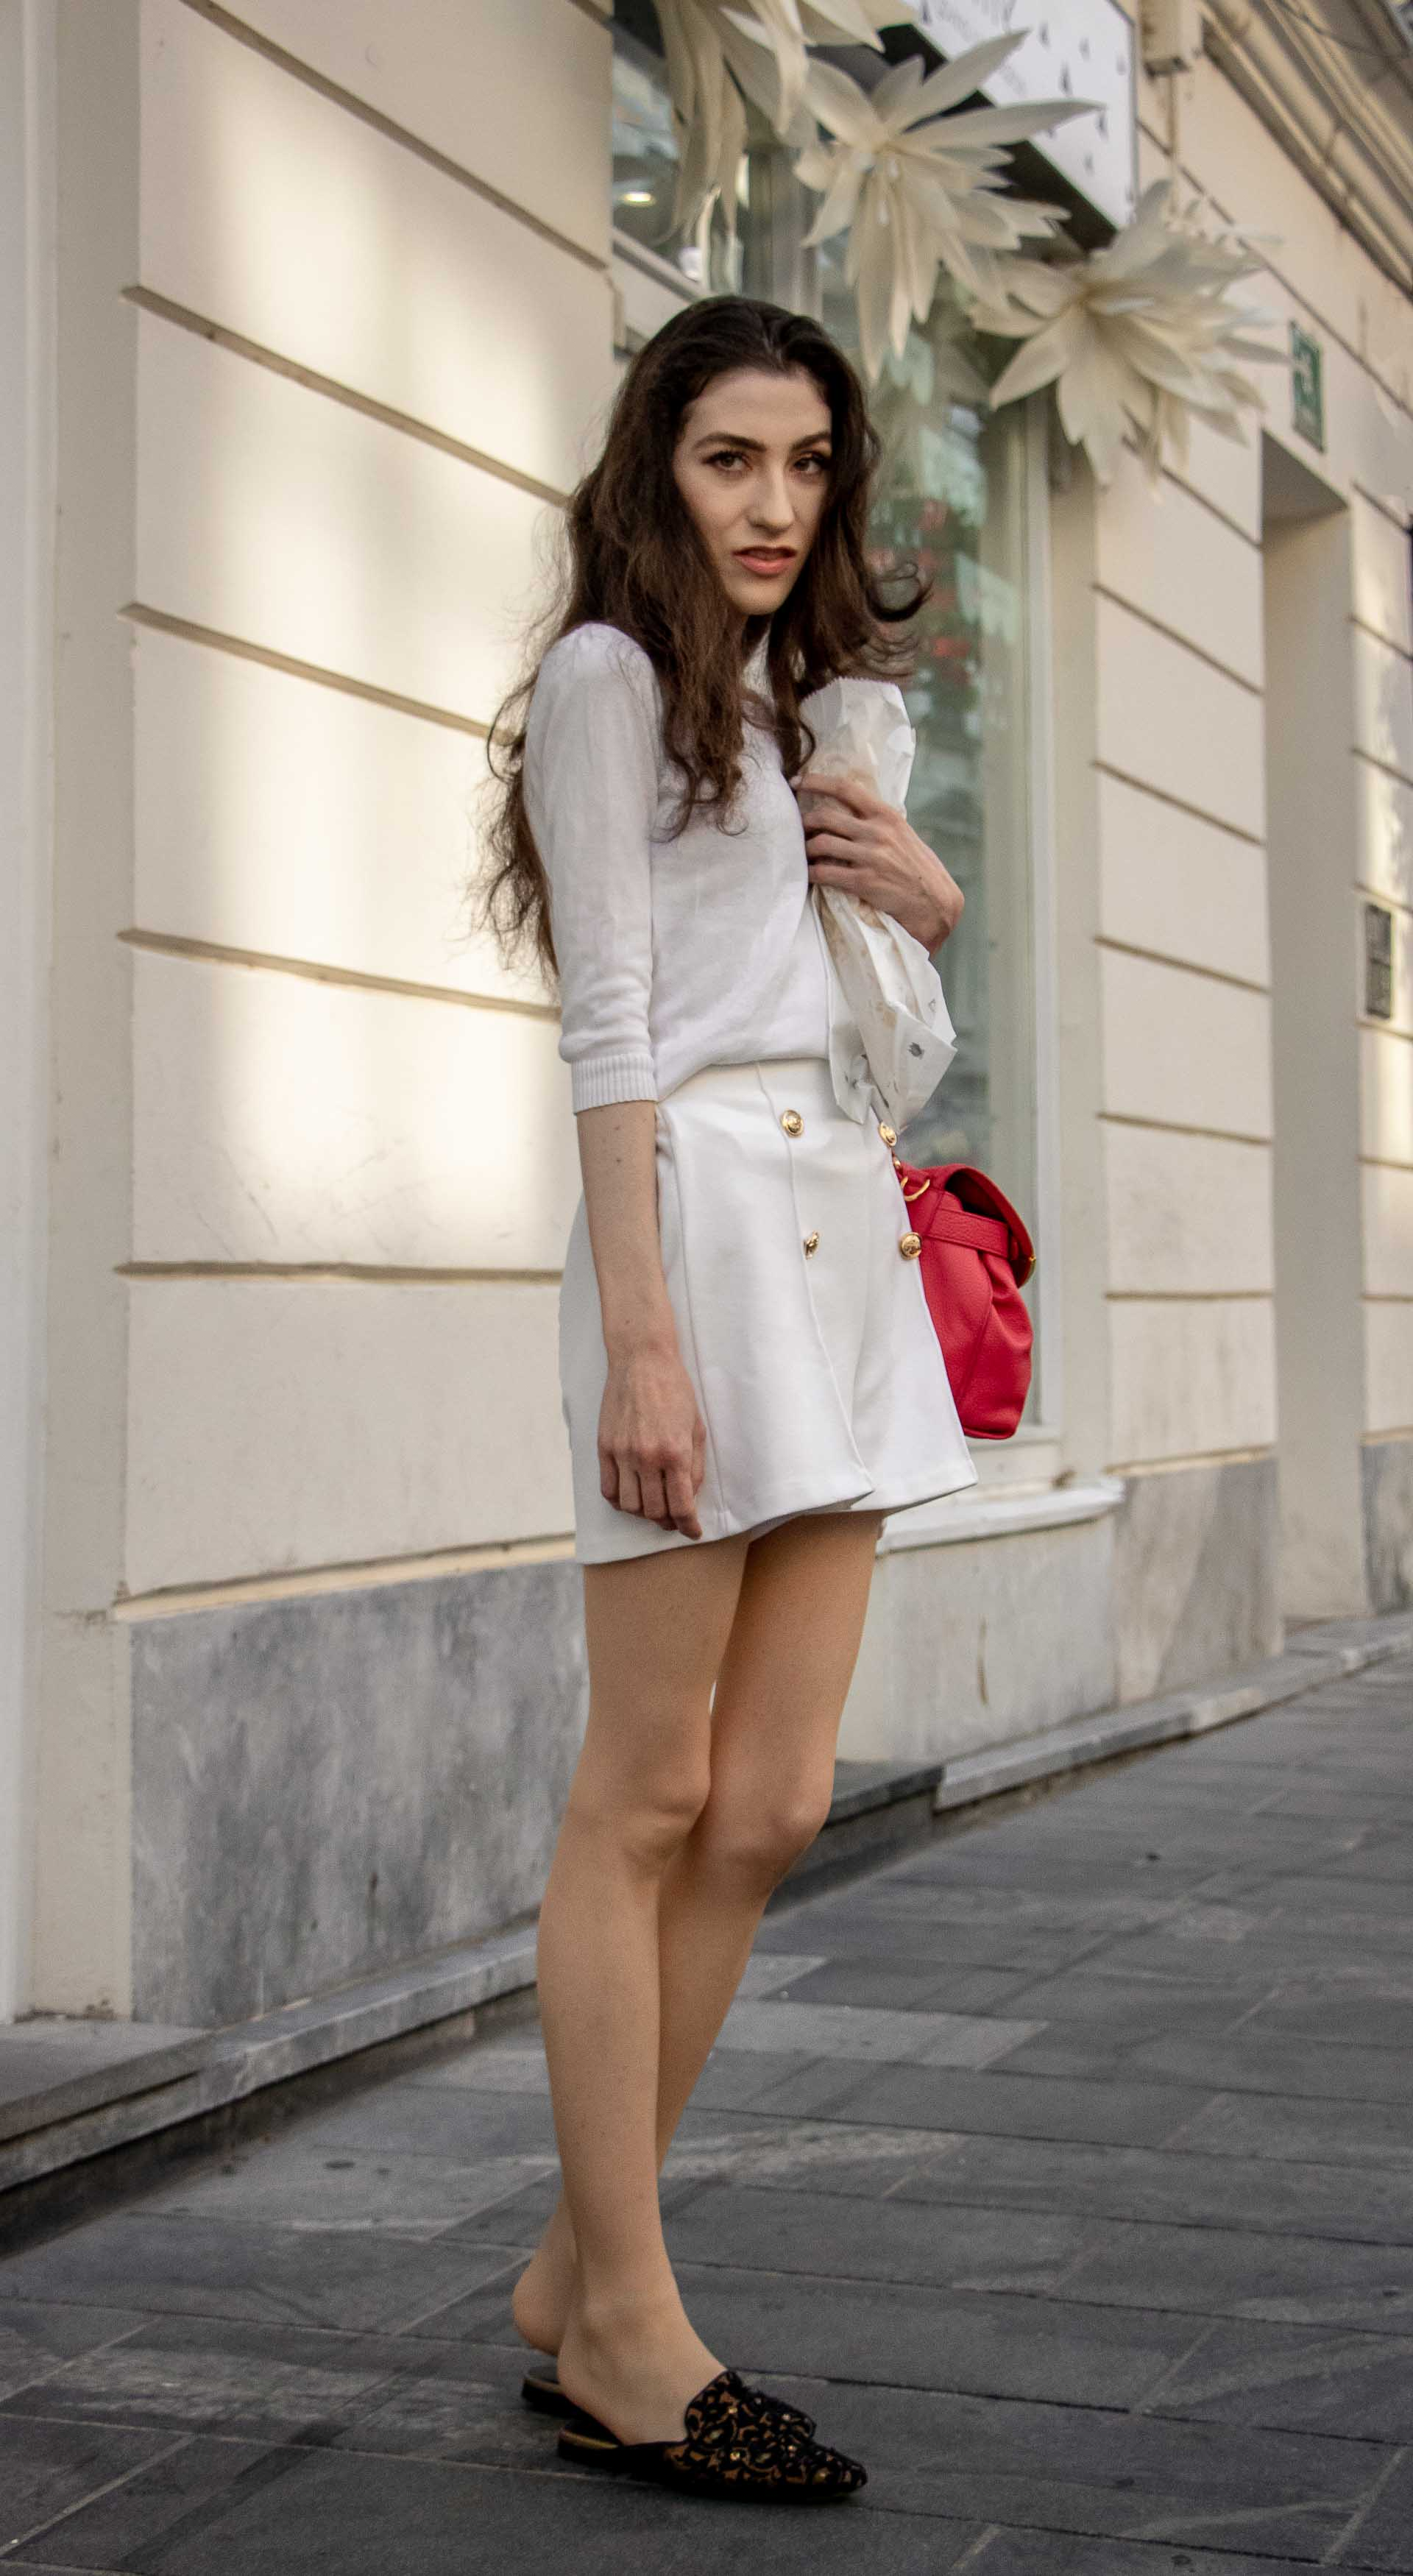 Beautiful Slovenian Fashion Blogger Veronika Lipar of Brunette from Wall dressed in all in white outfit, a white sweater, white tailored shorts, black flat slipper mules, pink top handle bag, a paper bag in summer in the city